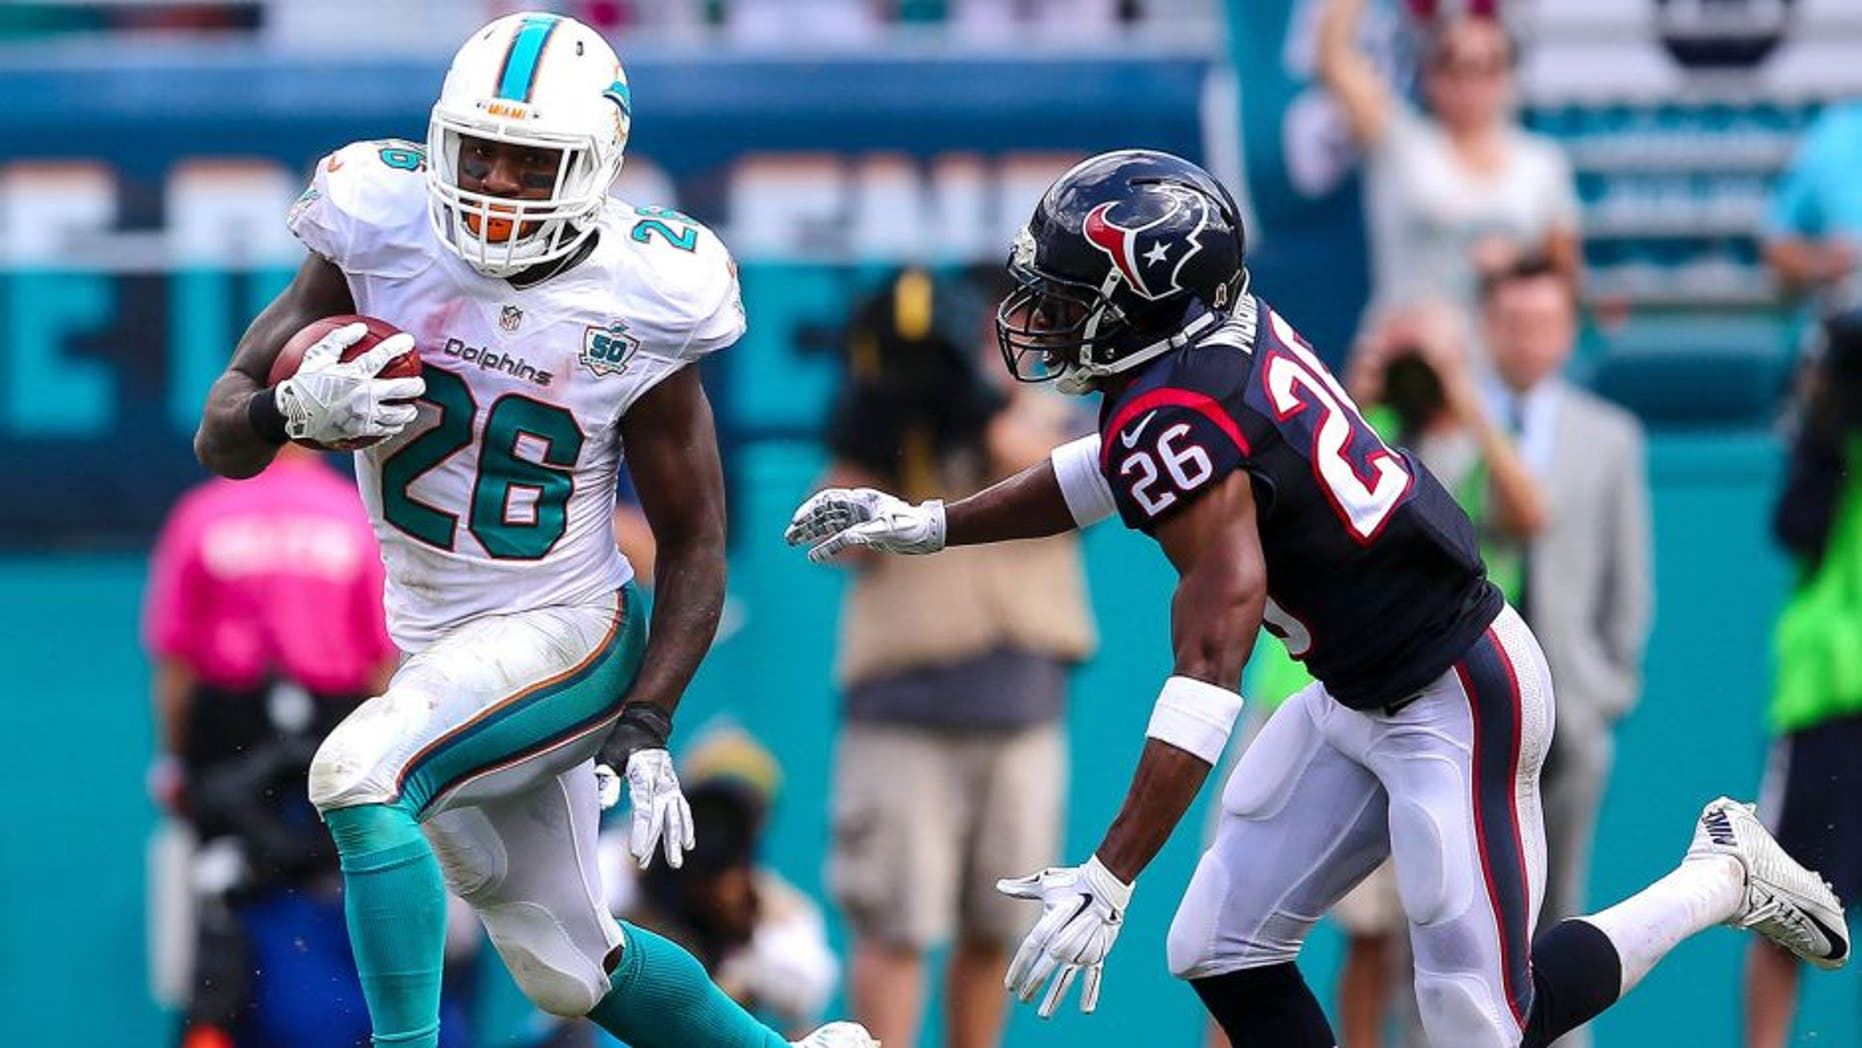 Oct 25, 2015; Miami Gardens, FL, USA; Miami Dolphins running back Lamar Miller (26) runs past Houston Texans defensive back Rahim Moore (26) during a game at Sun Life Stadium. Mandatory Credit: Steve Mitchell-USA TODAY Sports